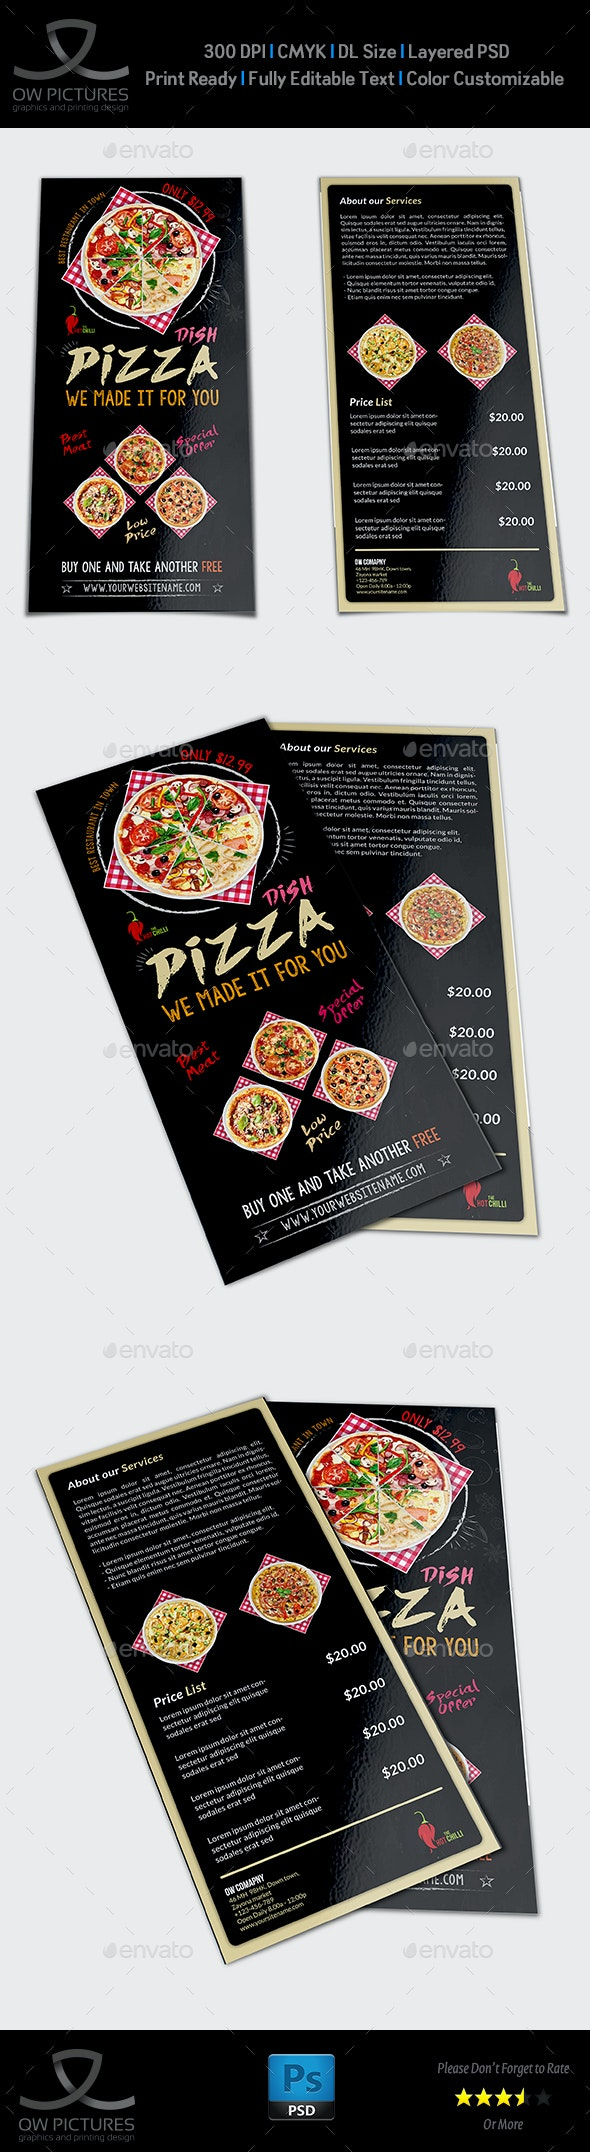 Pizza Restaurant Flyer  - DL Size Vol.2 - Restaurant Flyers